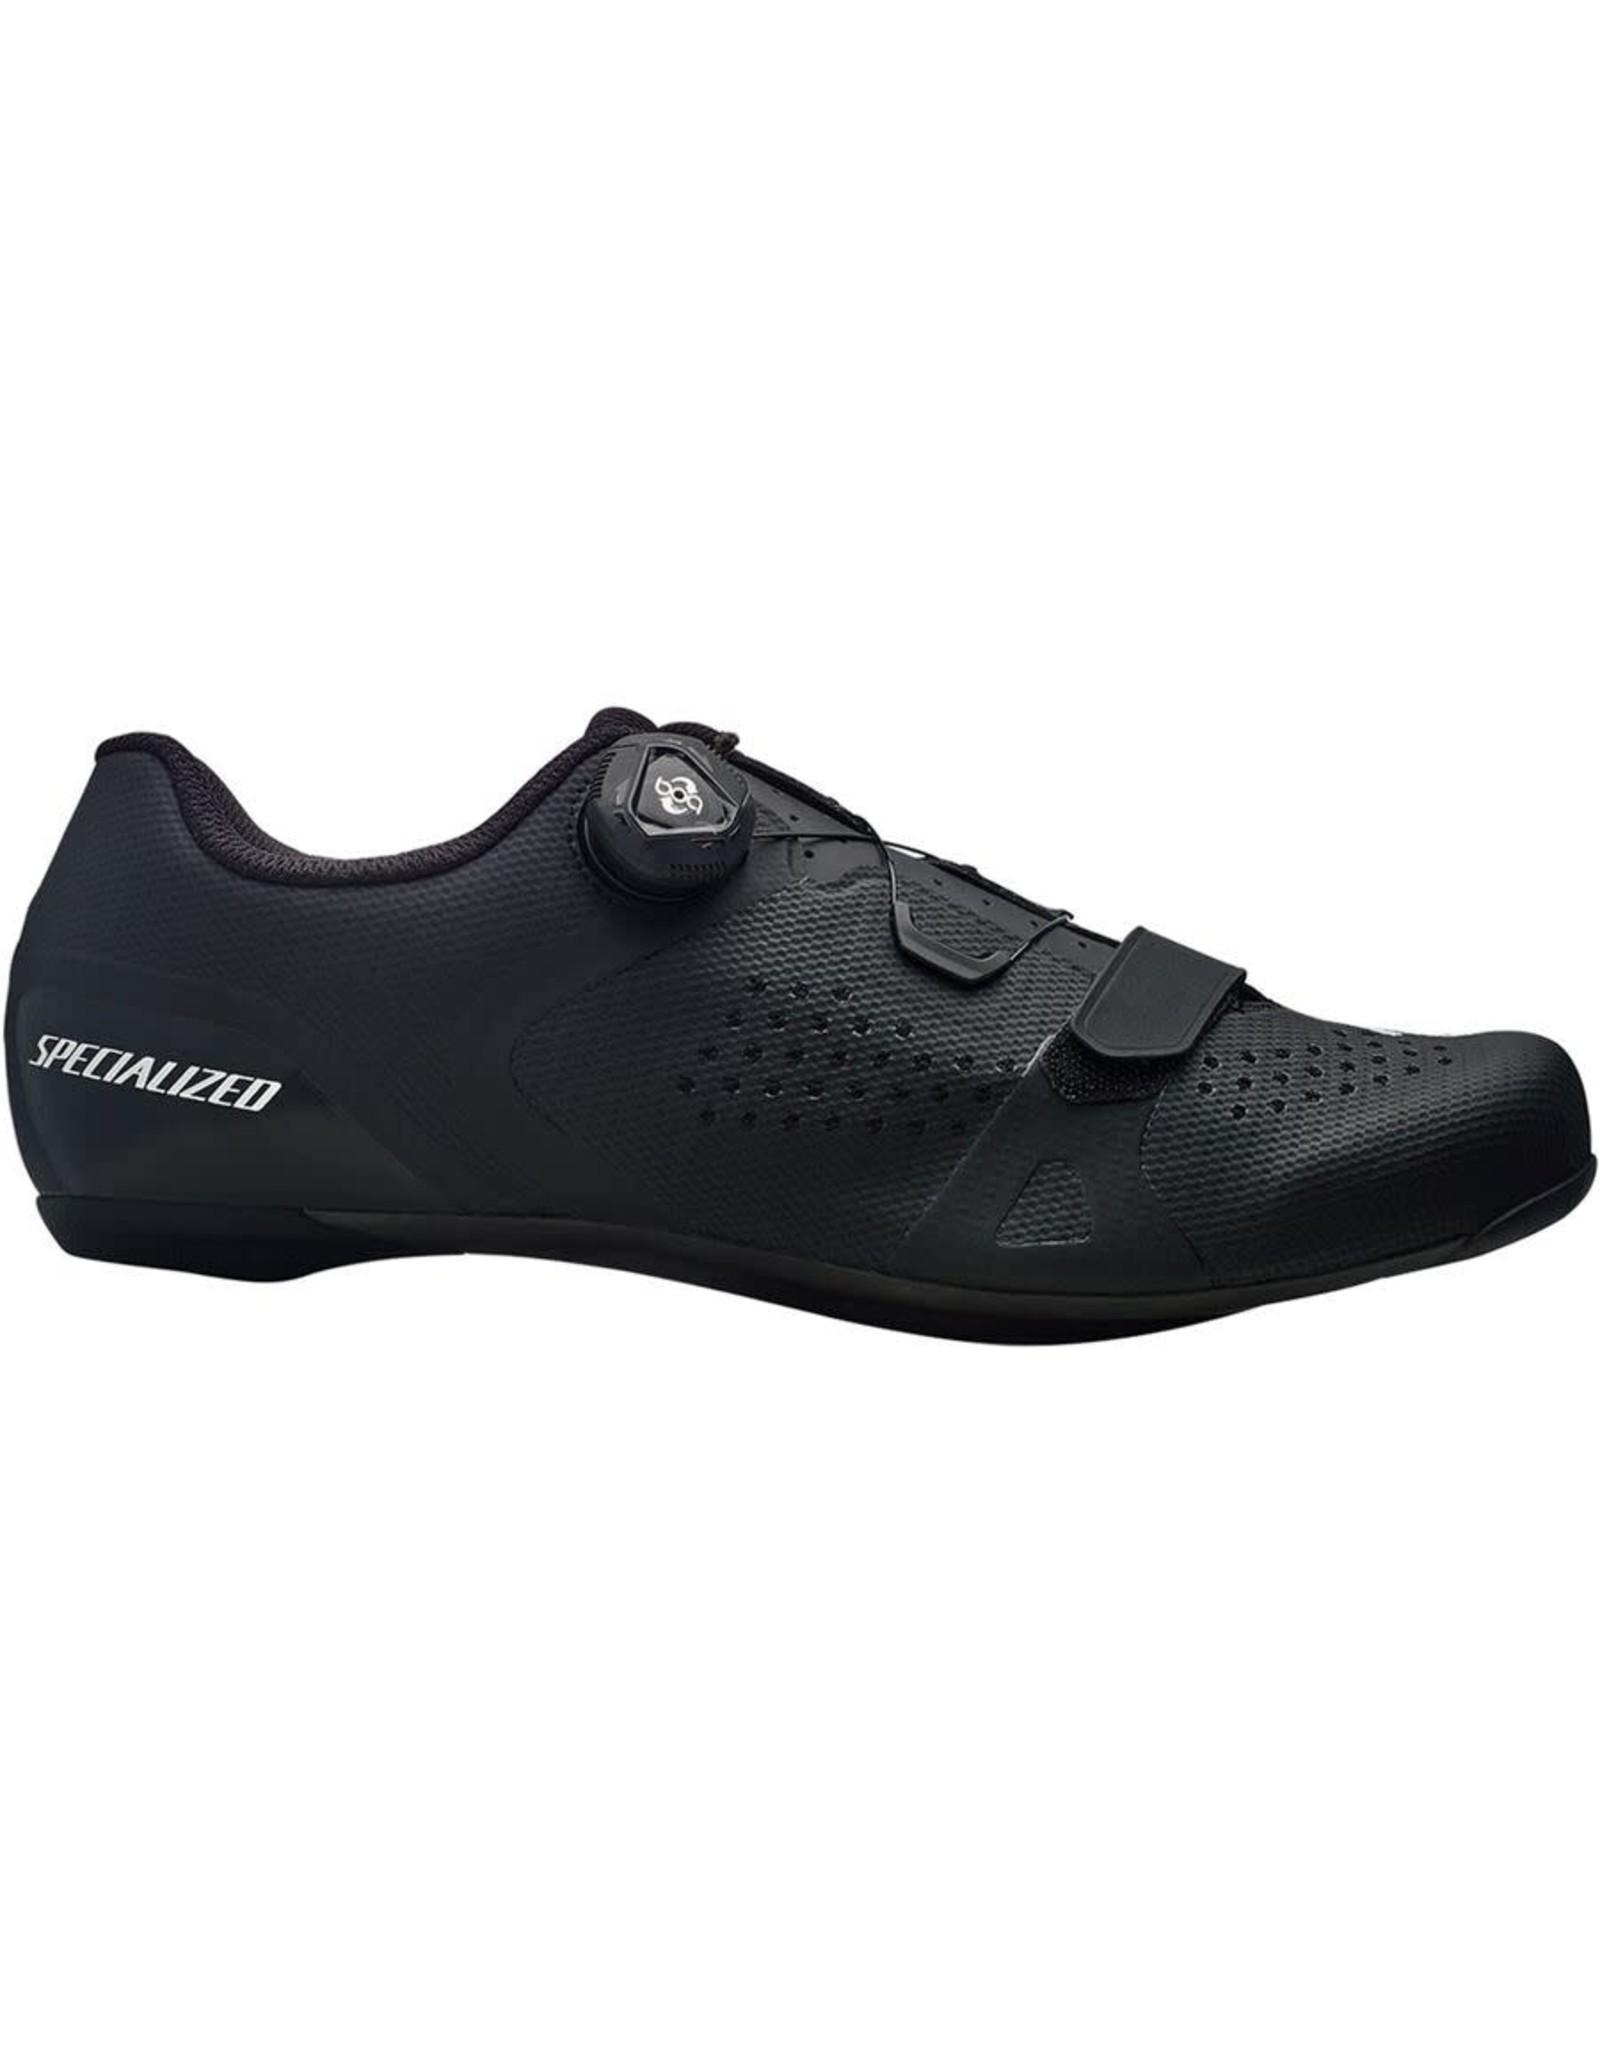 Specialized Shoe Spec Torch 2.0 Road Blk 41